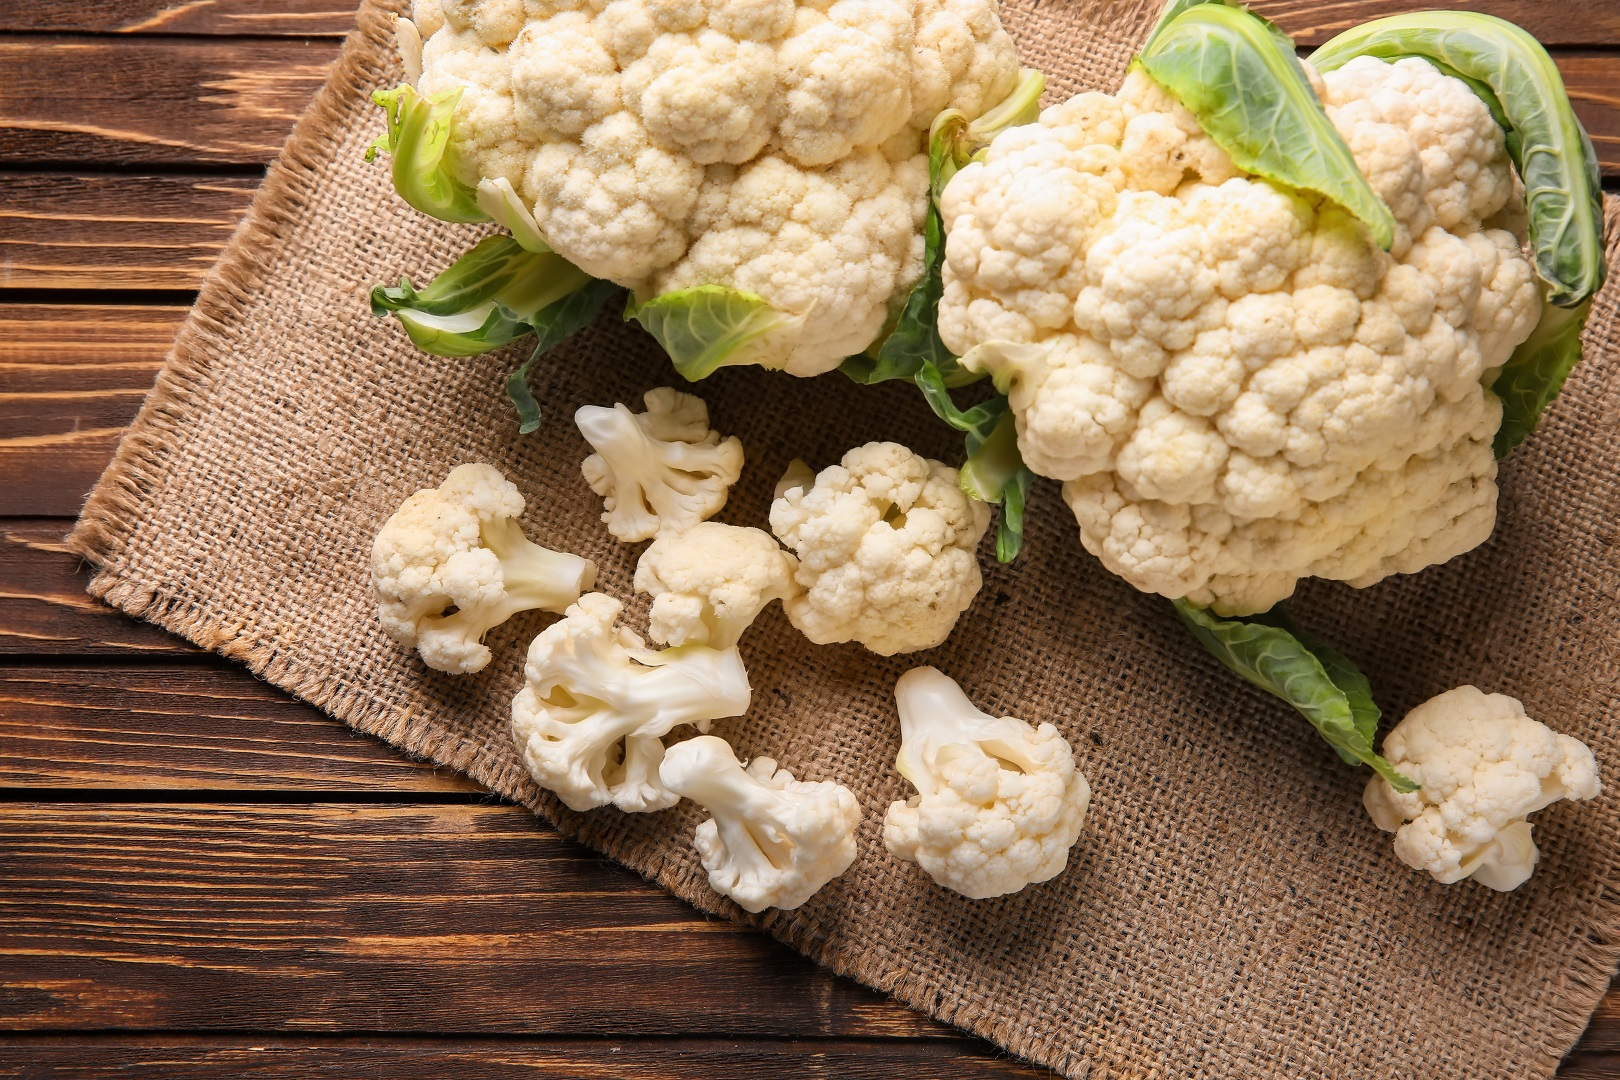 Fresh Cauliflower on Wooden Table and Burlap